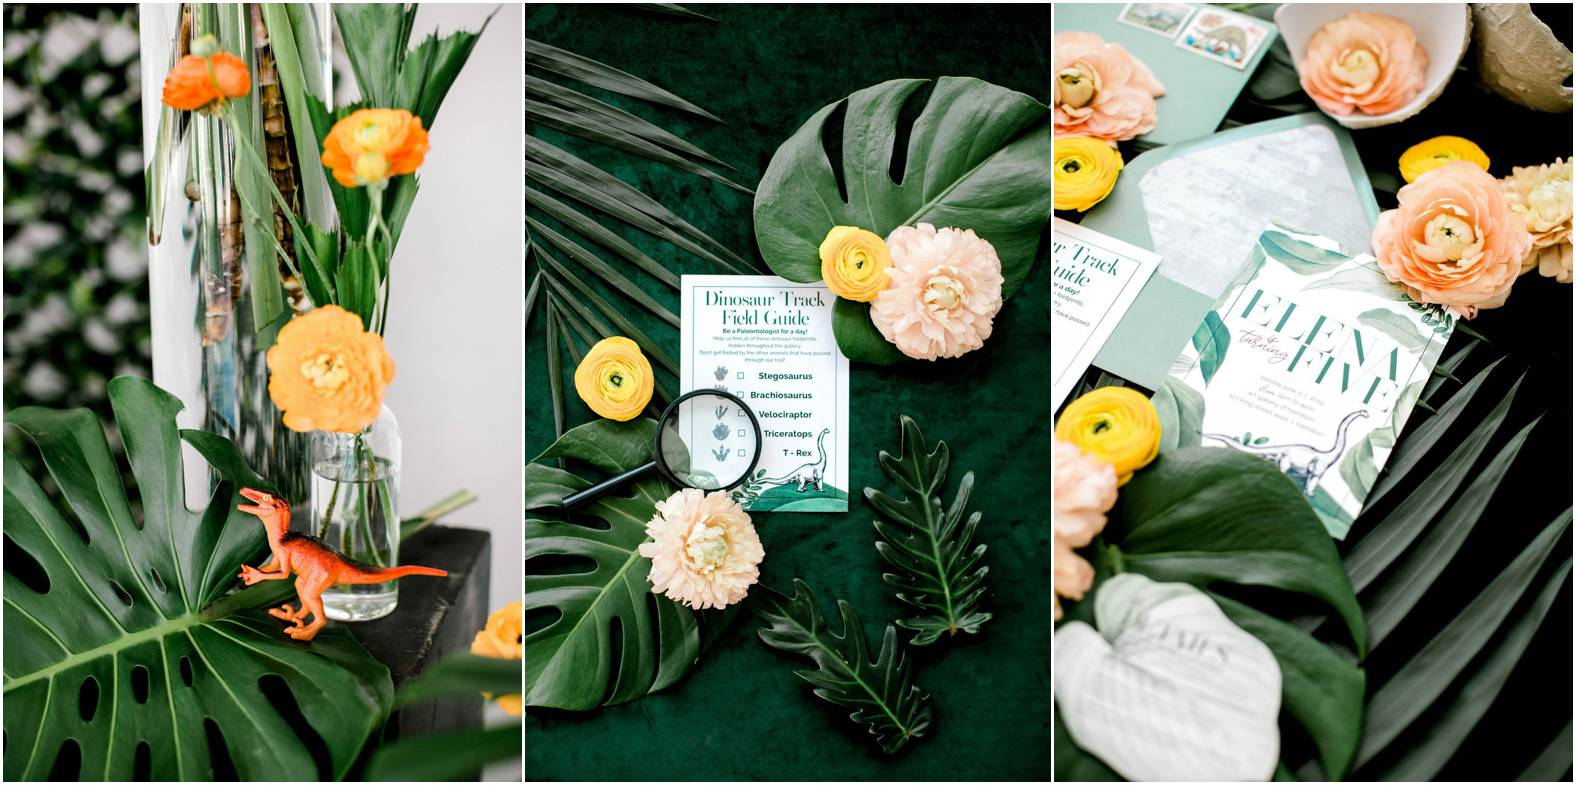 DIY dinosaur party tropical foliage and summer blooms floral inspiration